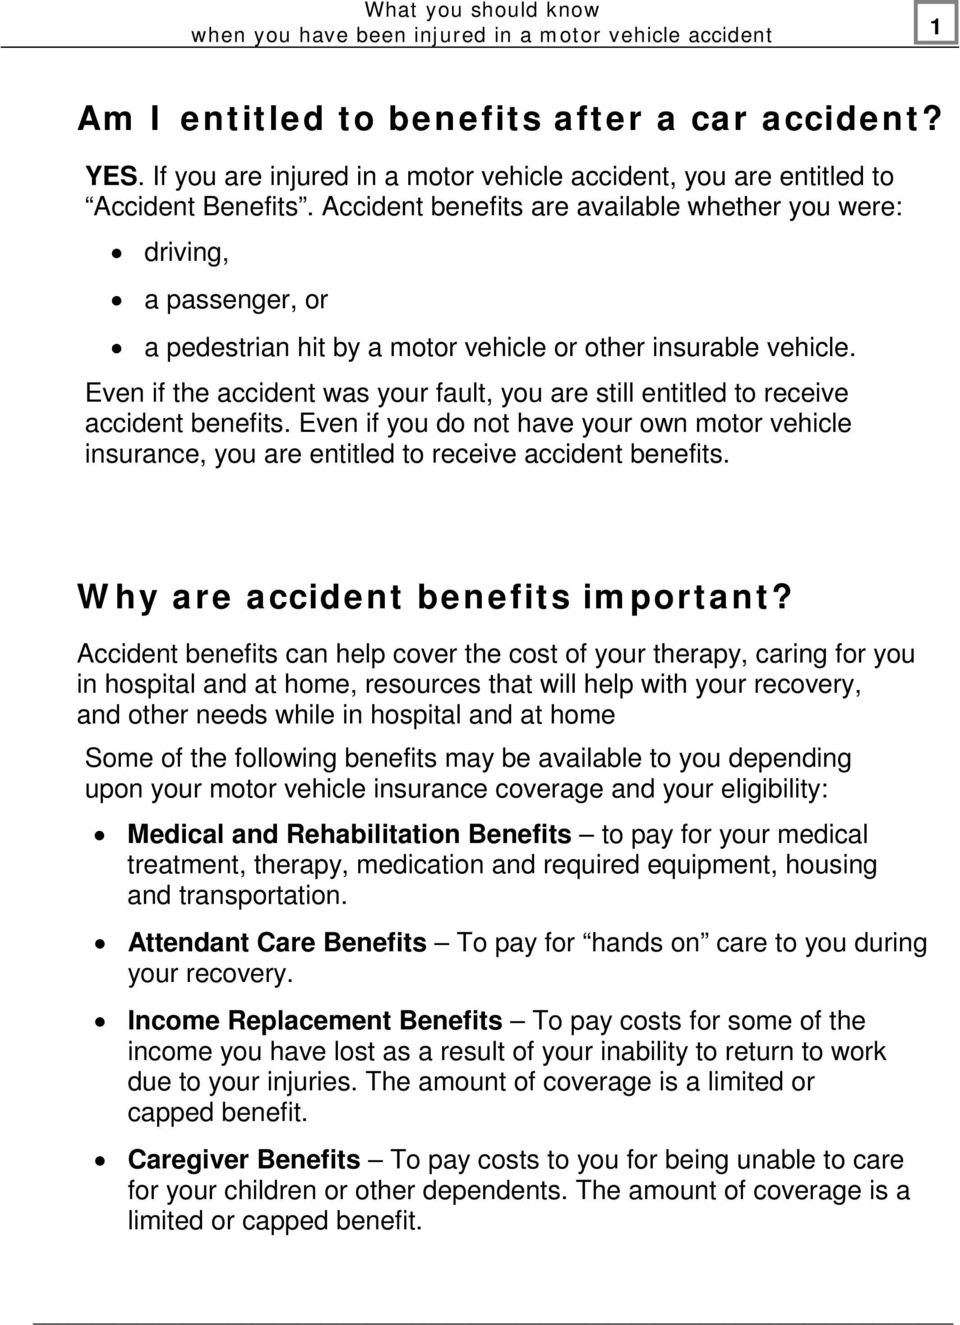 Even if the accident was your fault, you are still entitled to receive accident benefits. Even if you do not have your own motor vehicle insurance, you are entitled to receive accident benefits.